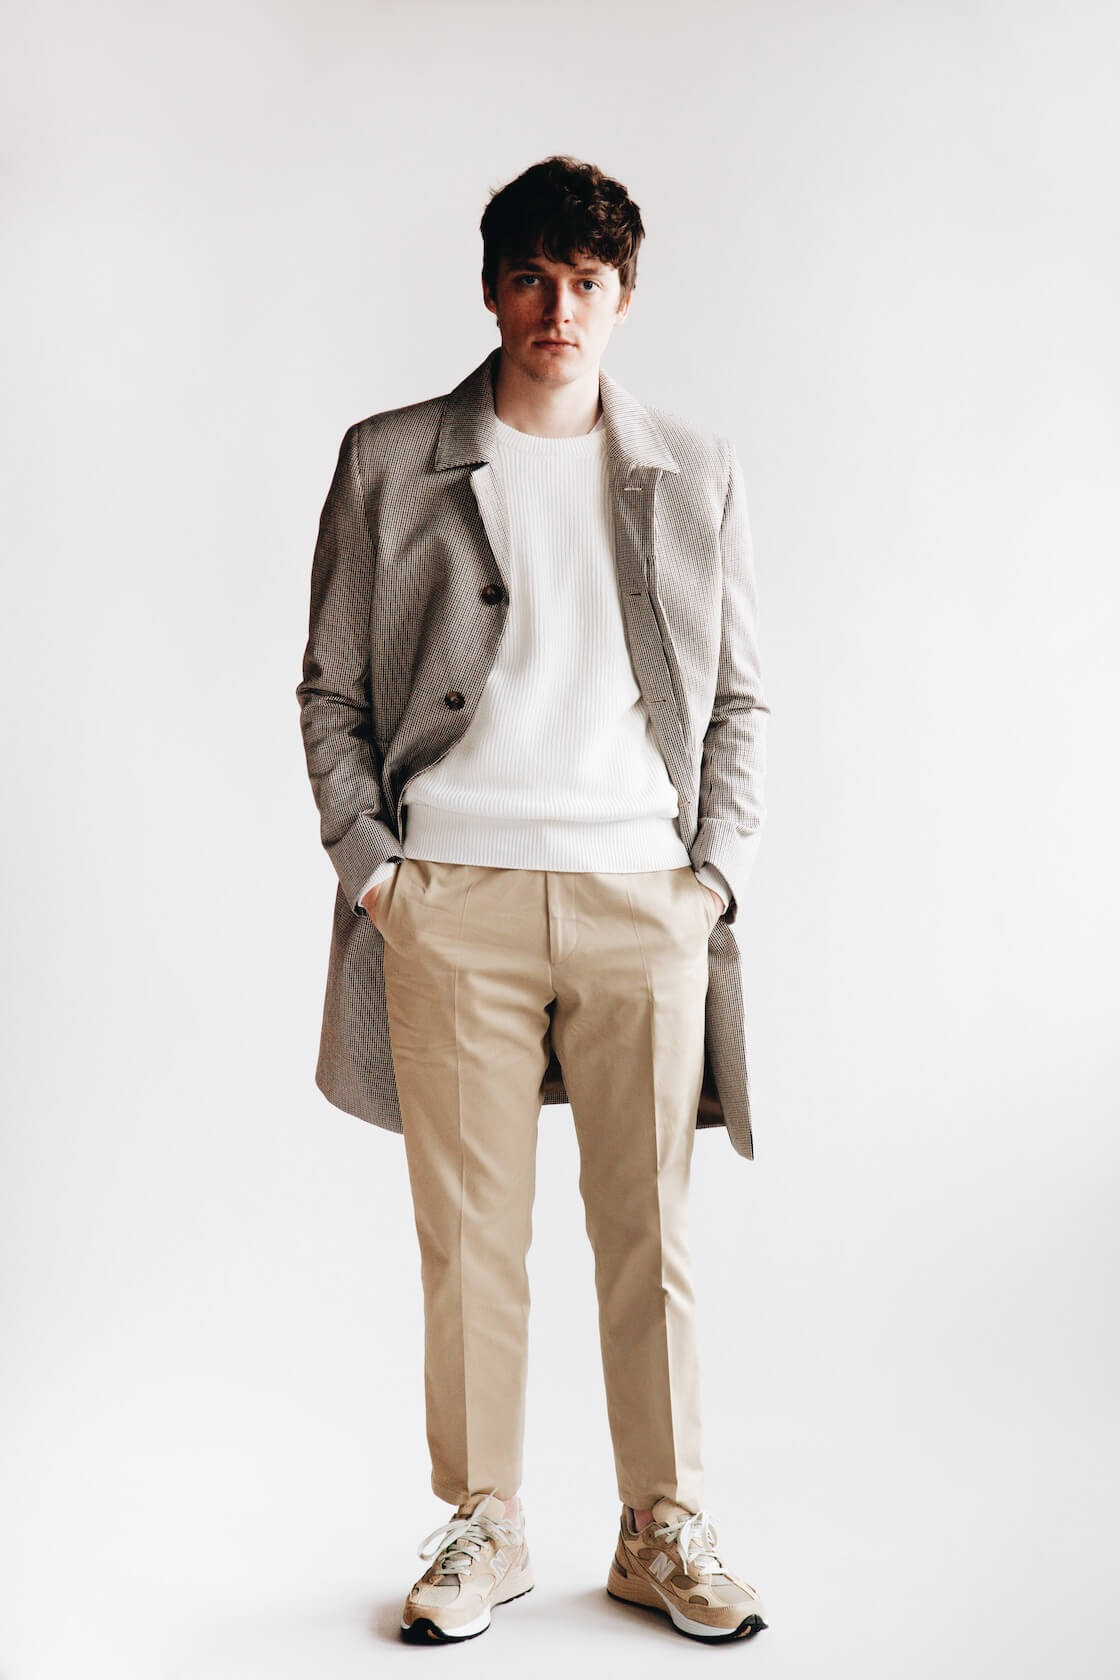 harmony paris maximus coat, wade sweater, patrizio trousers and new balance shoes on body